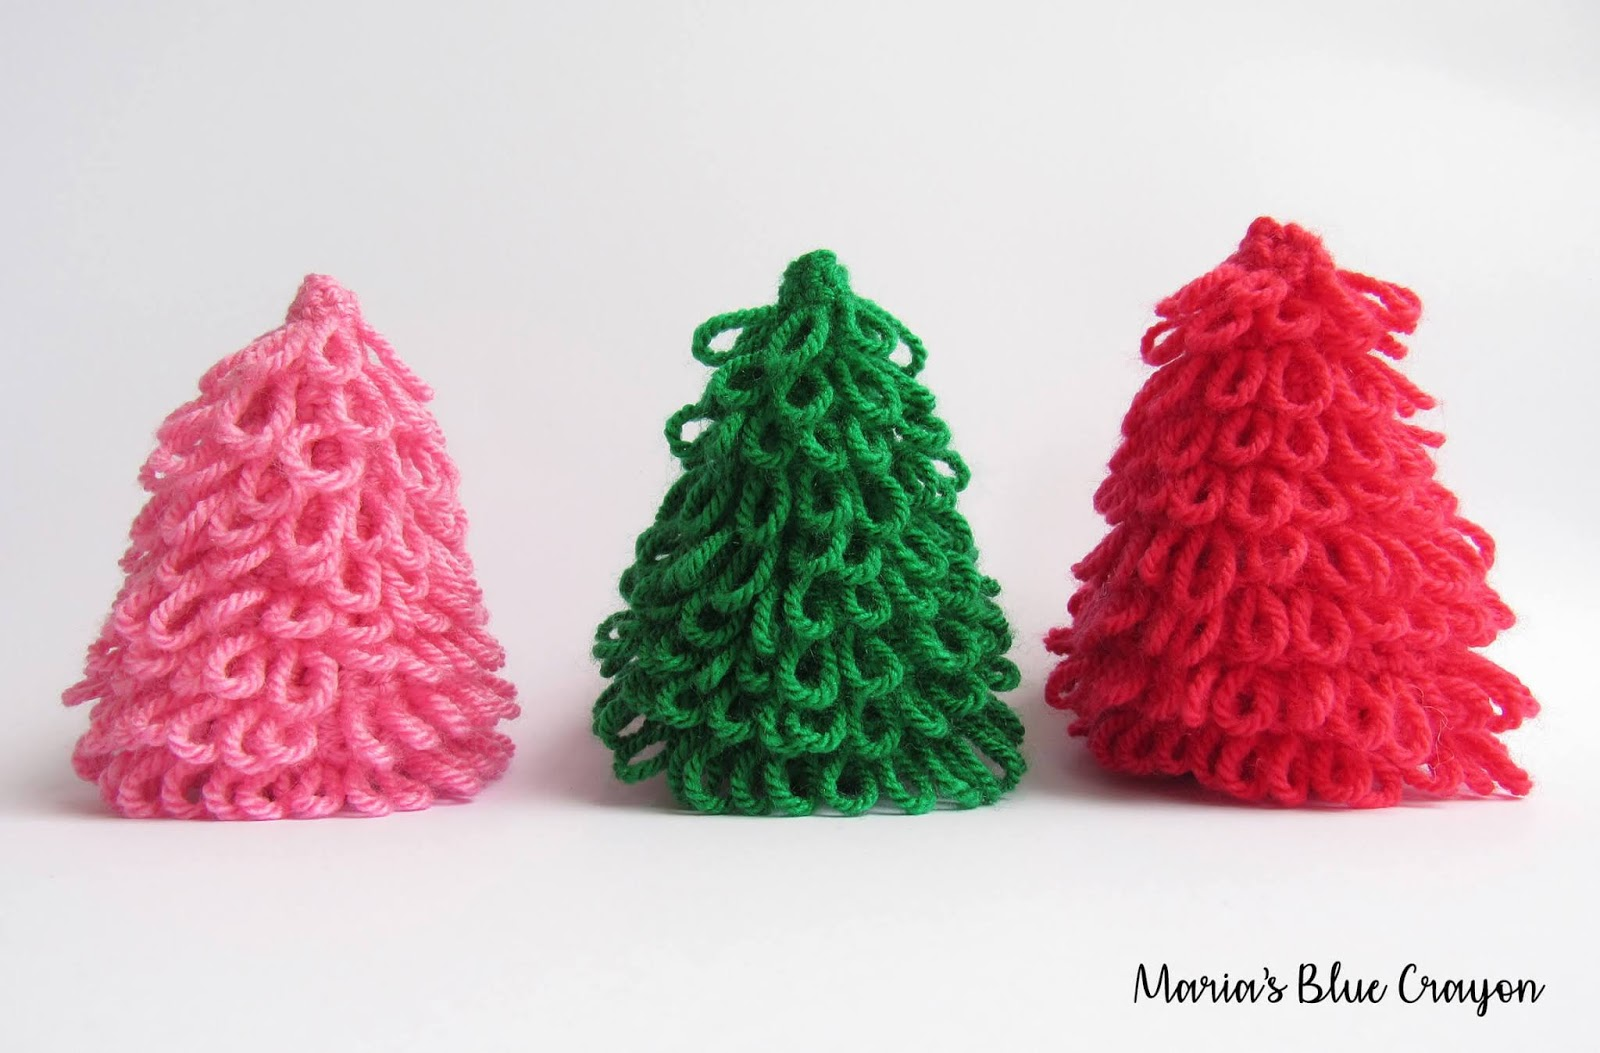 Crochet Mini Christmas Tree For Decoration Free Crochet Pattern